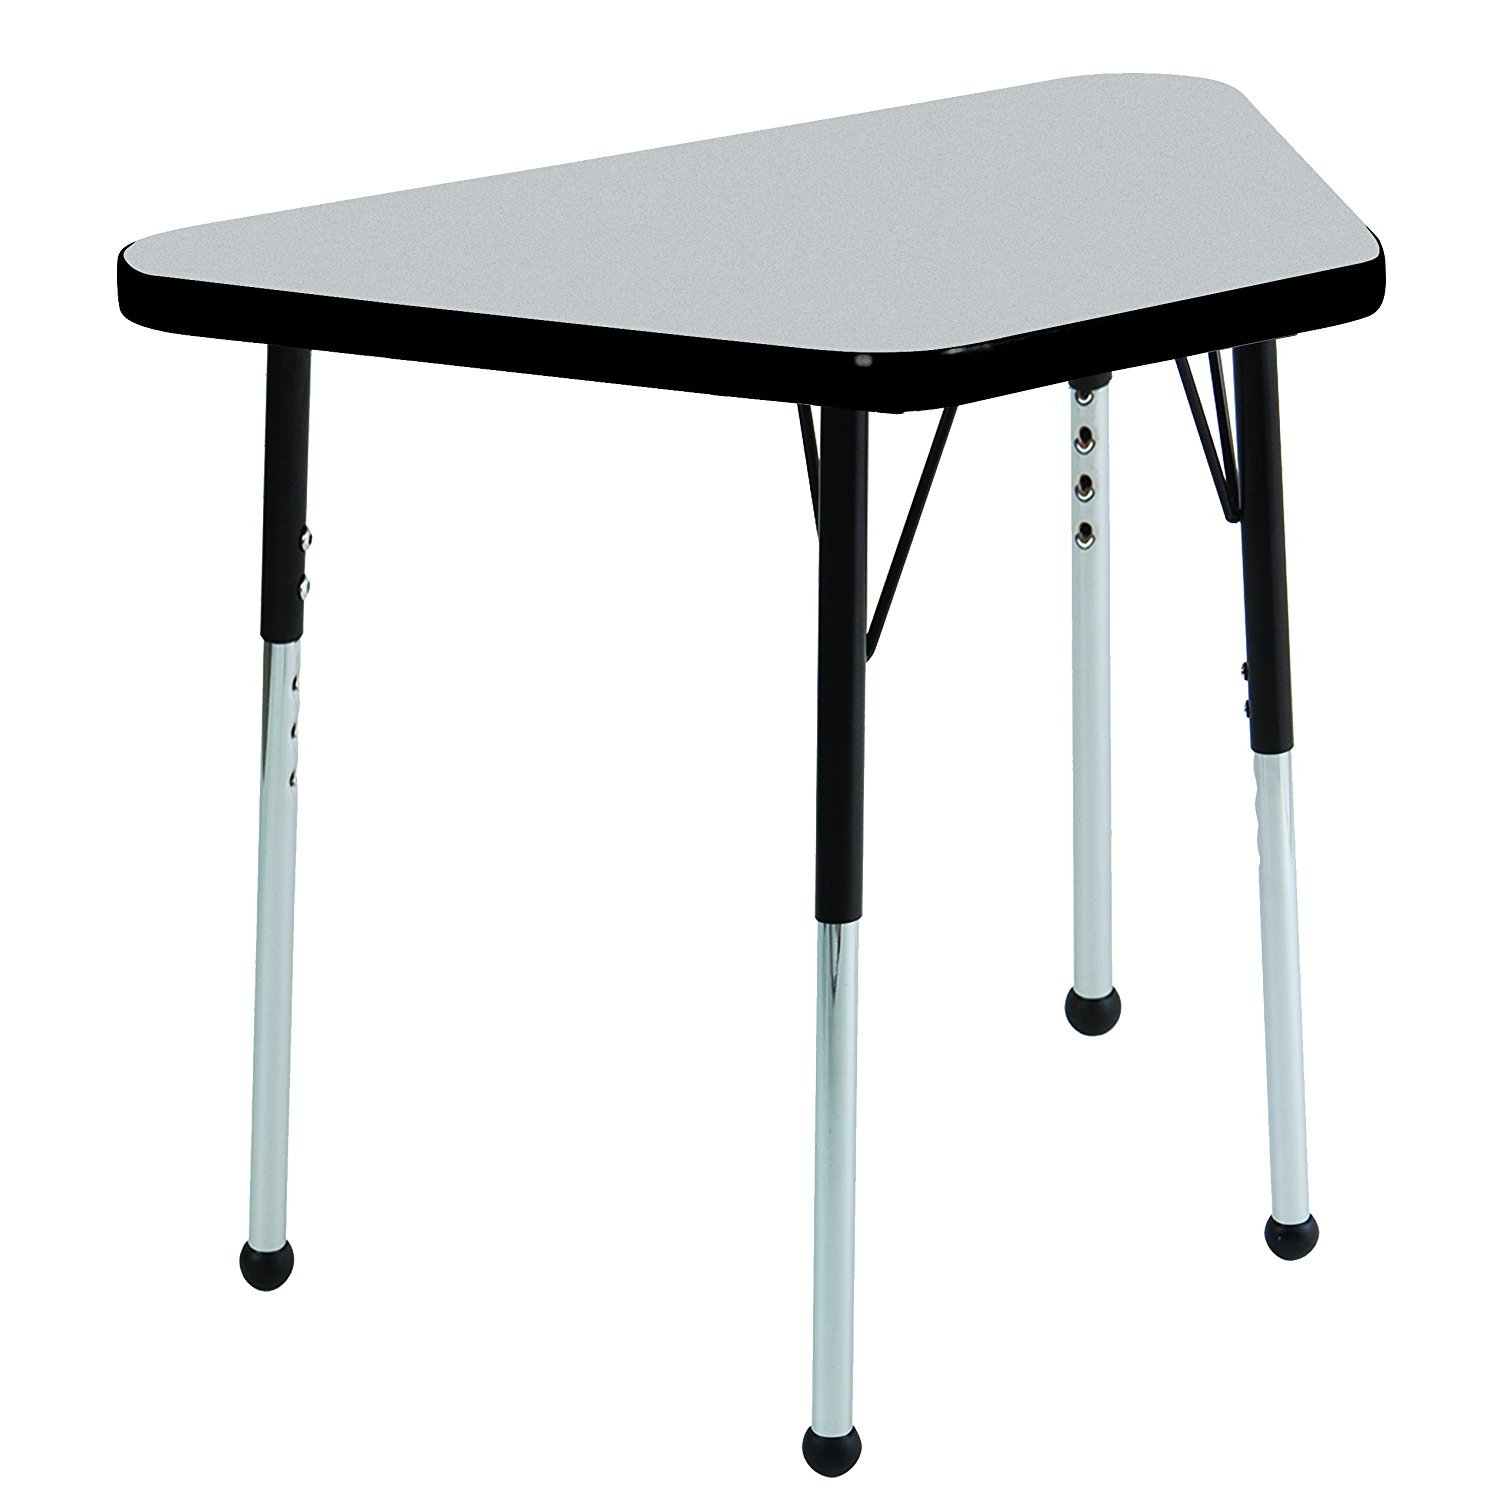 ECR4Kids Everyday T-Mold 18'' x 30'' Trapezoid Activity School Table, Standard Legs w/Ball Glides, Adjustable Height 19-30 inch (Grey/Black) by ECR4Kids